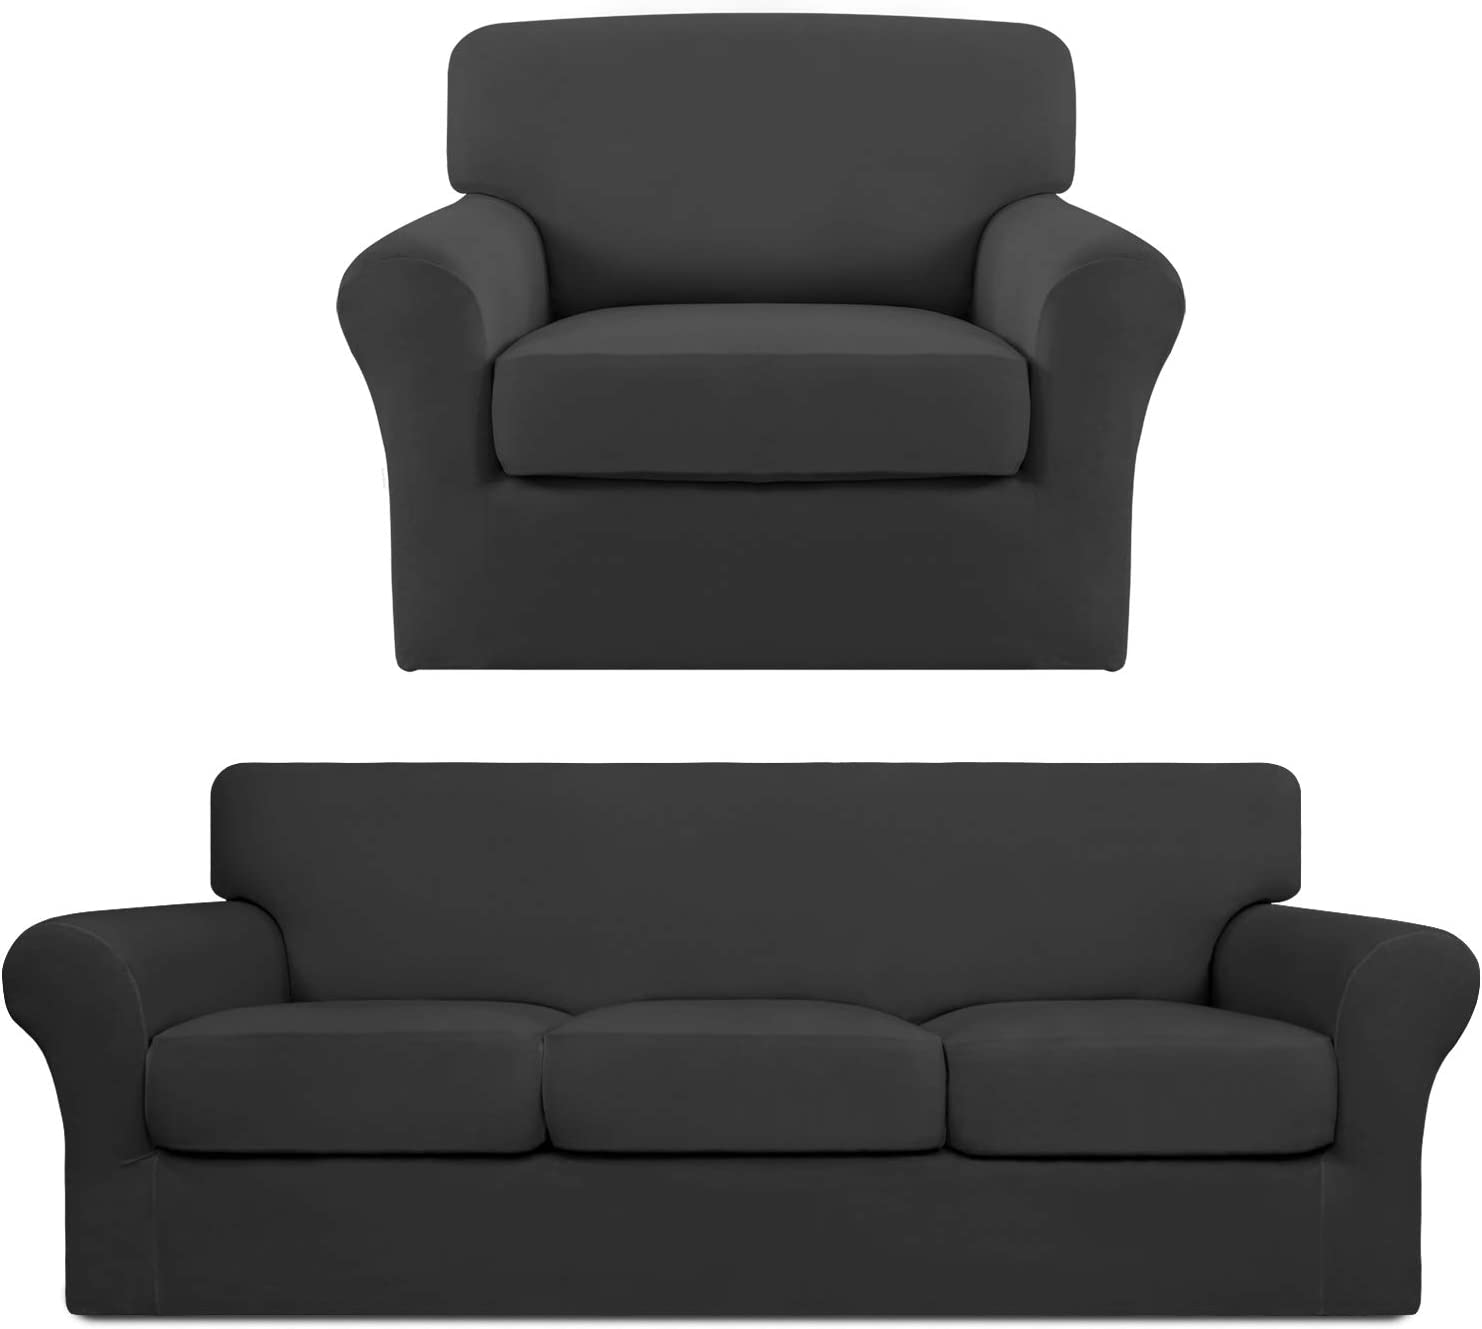 Easy-Going Chair Direct store slipcover Sofa Max 65% OFF Bundles